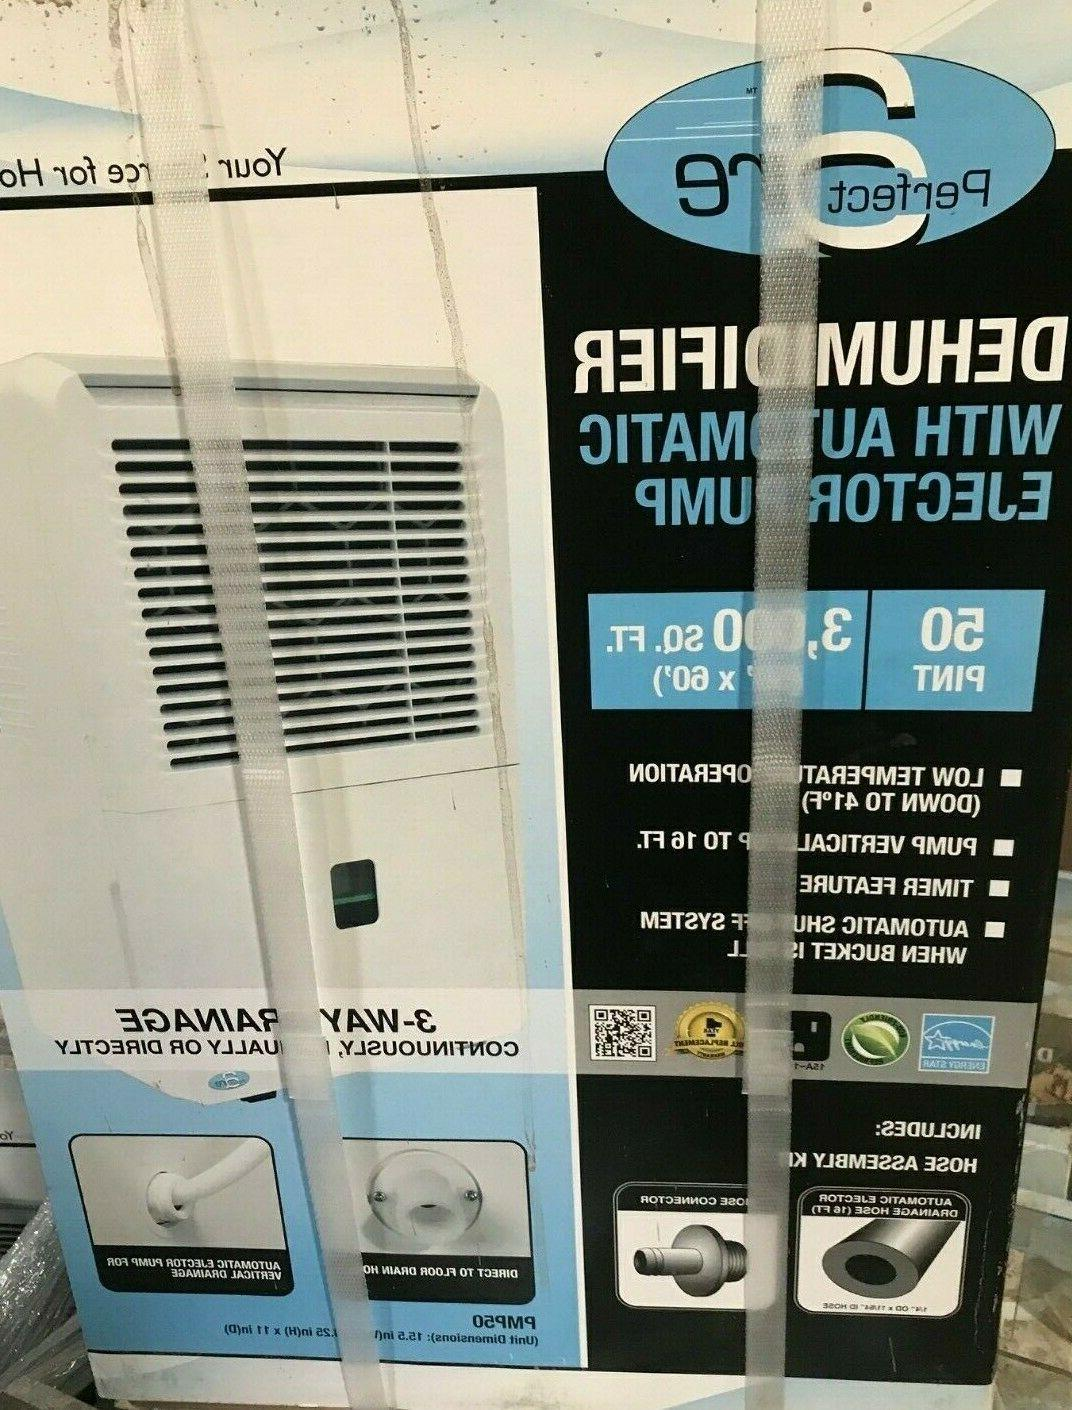 pmp50 50 pint electric dehumidifier with ejector